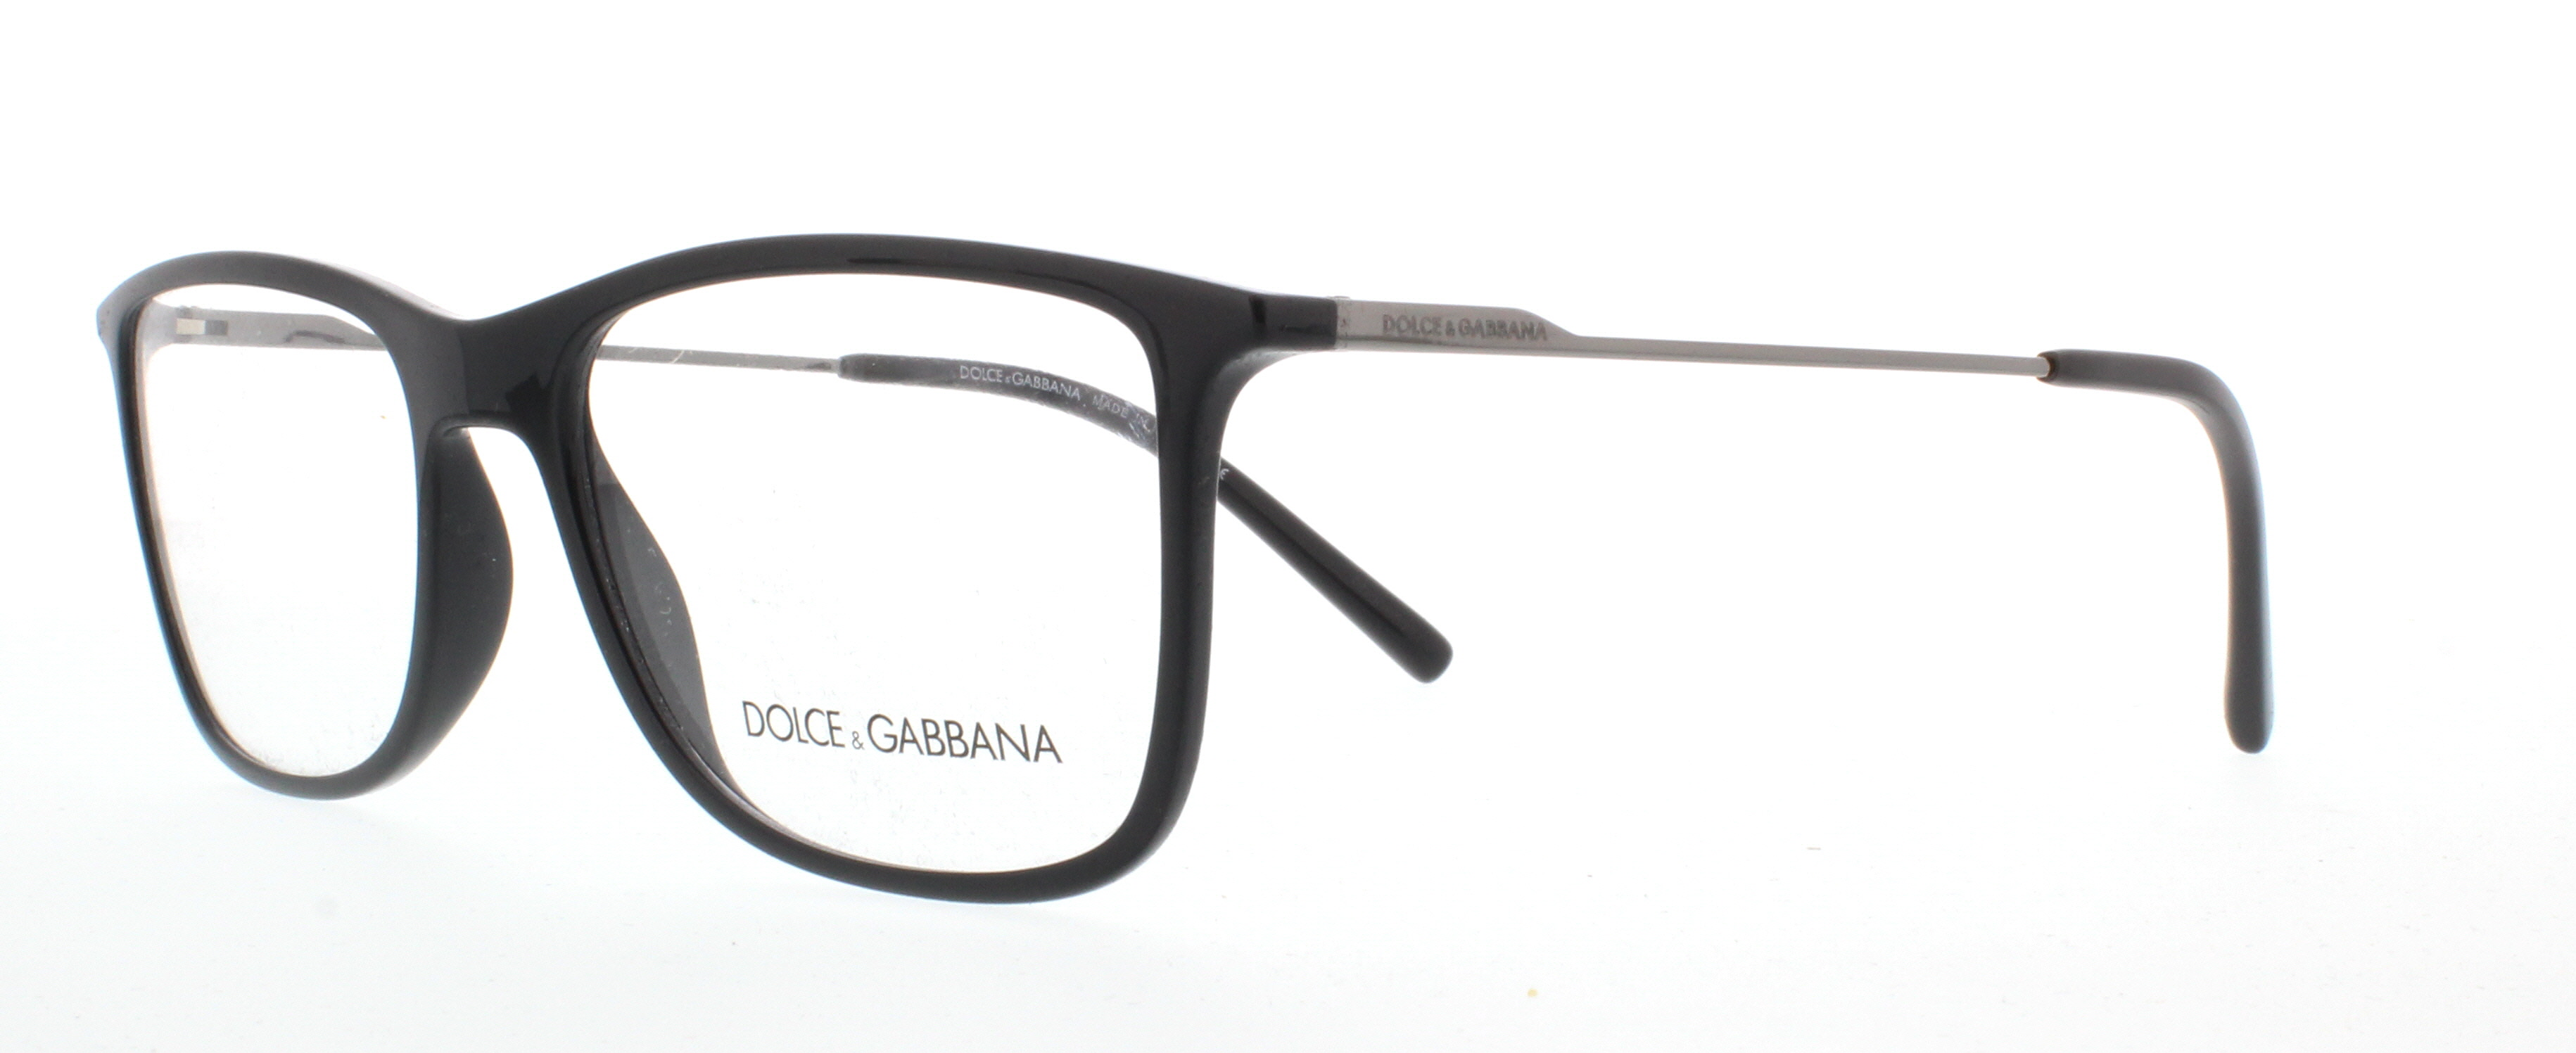 Picture of Dolce & Gabbana DG5024